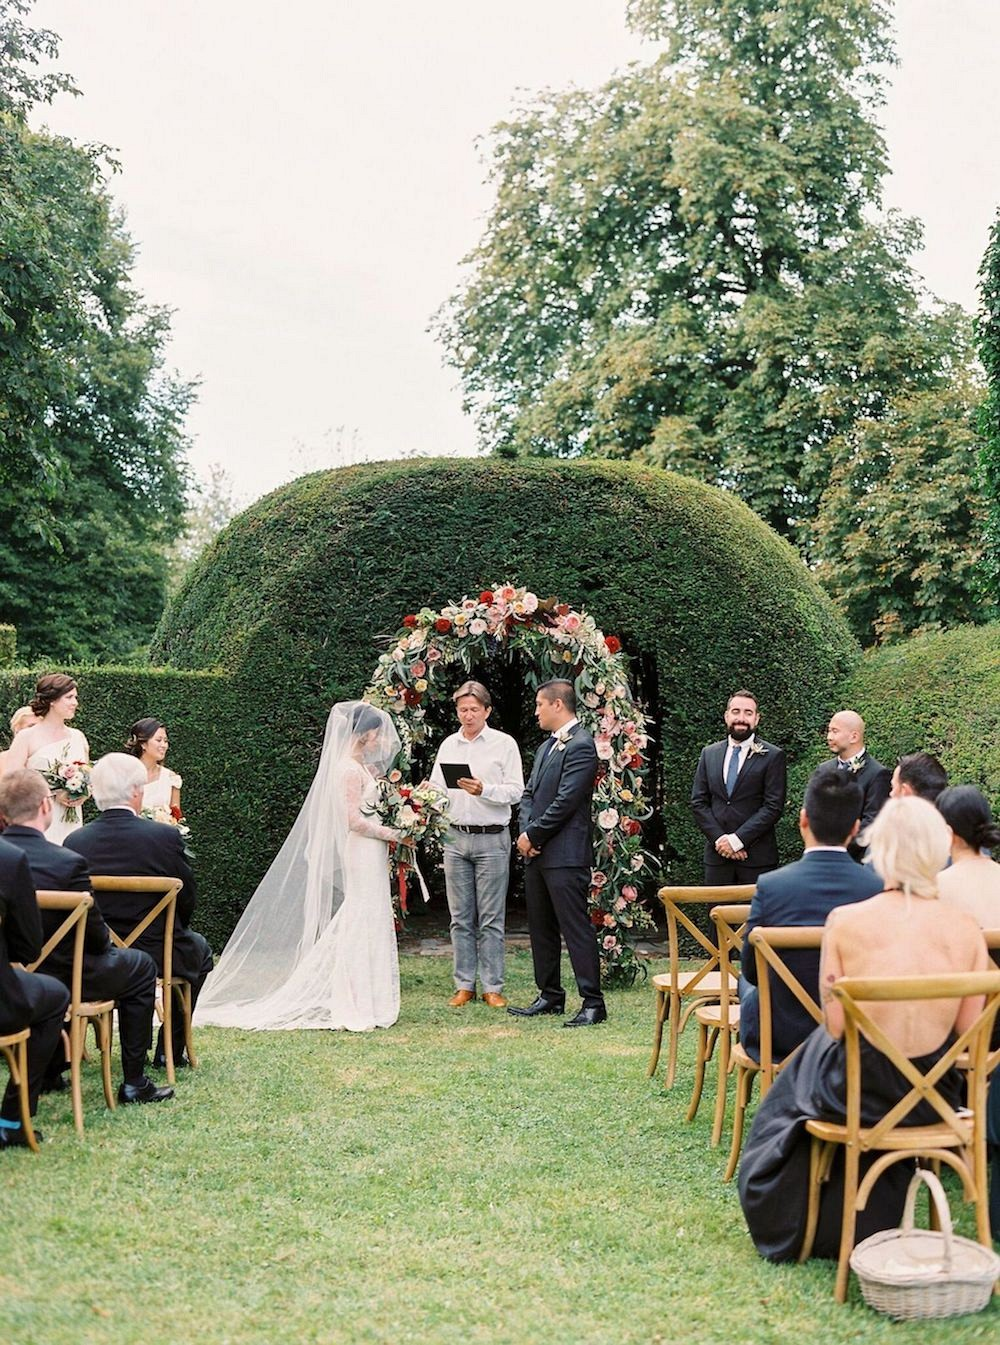 Ven and Adrian's Garden Wedding in France